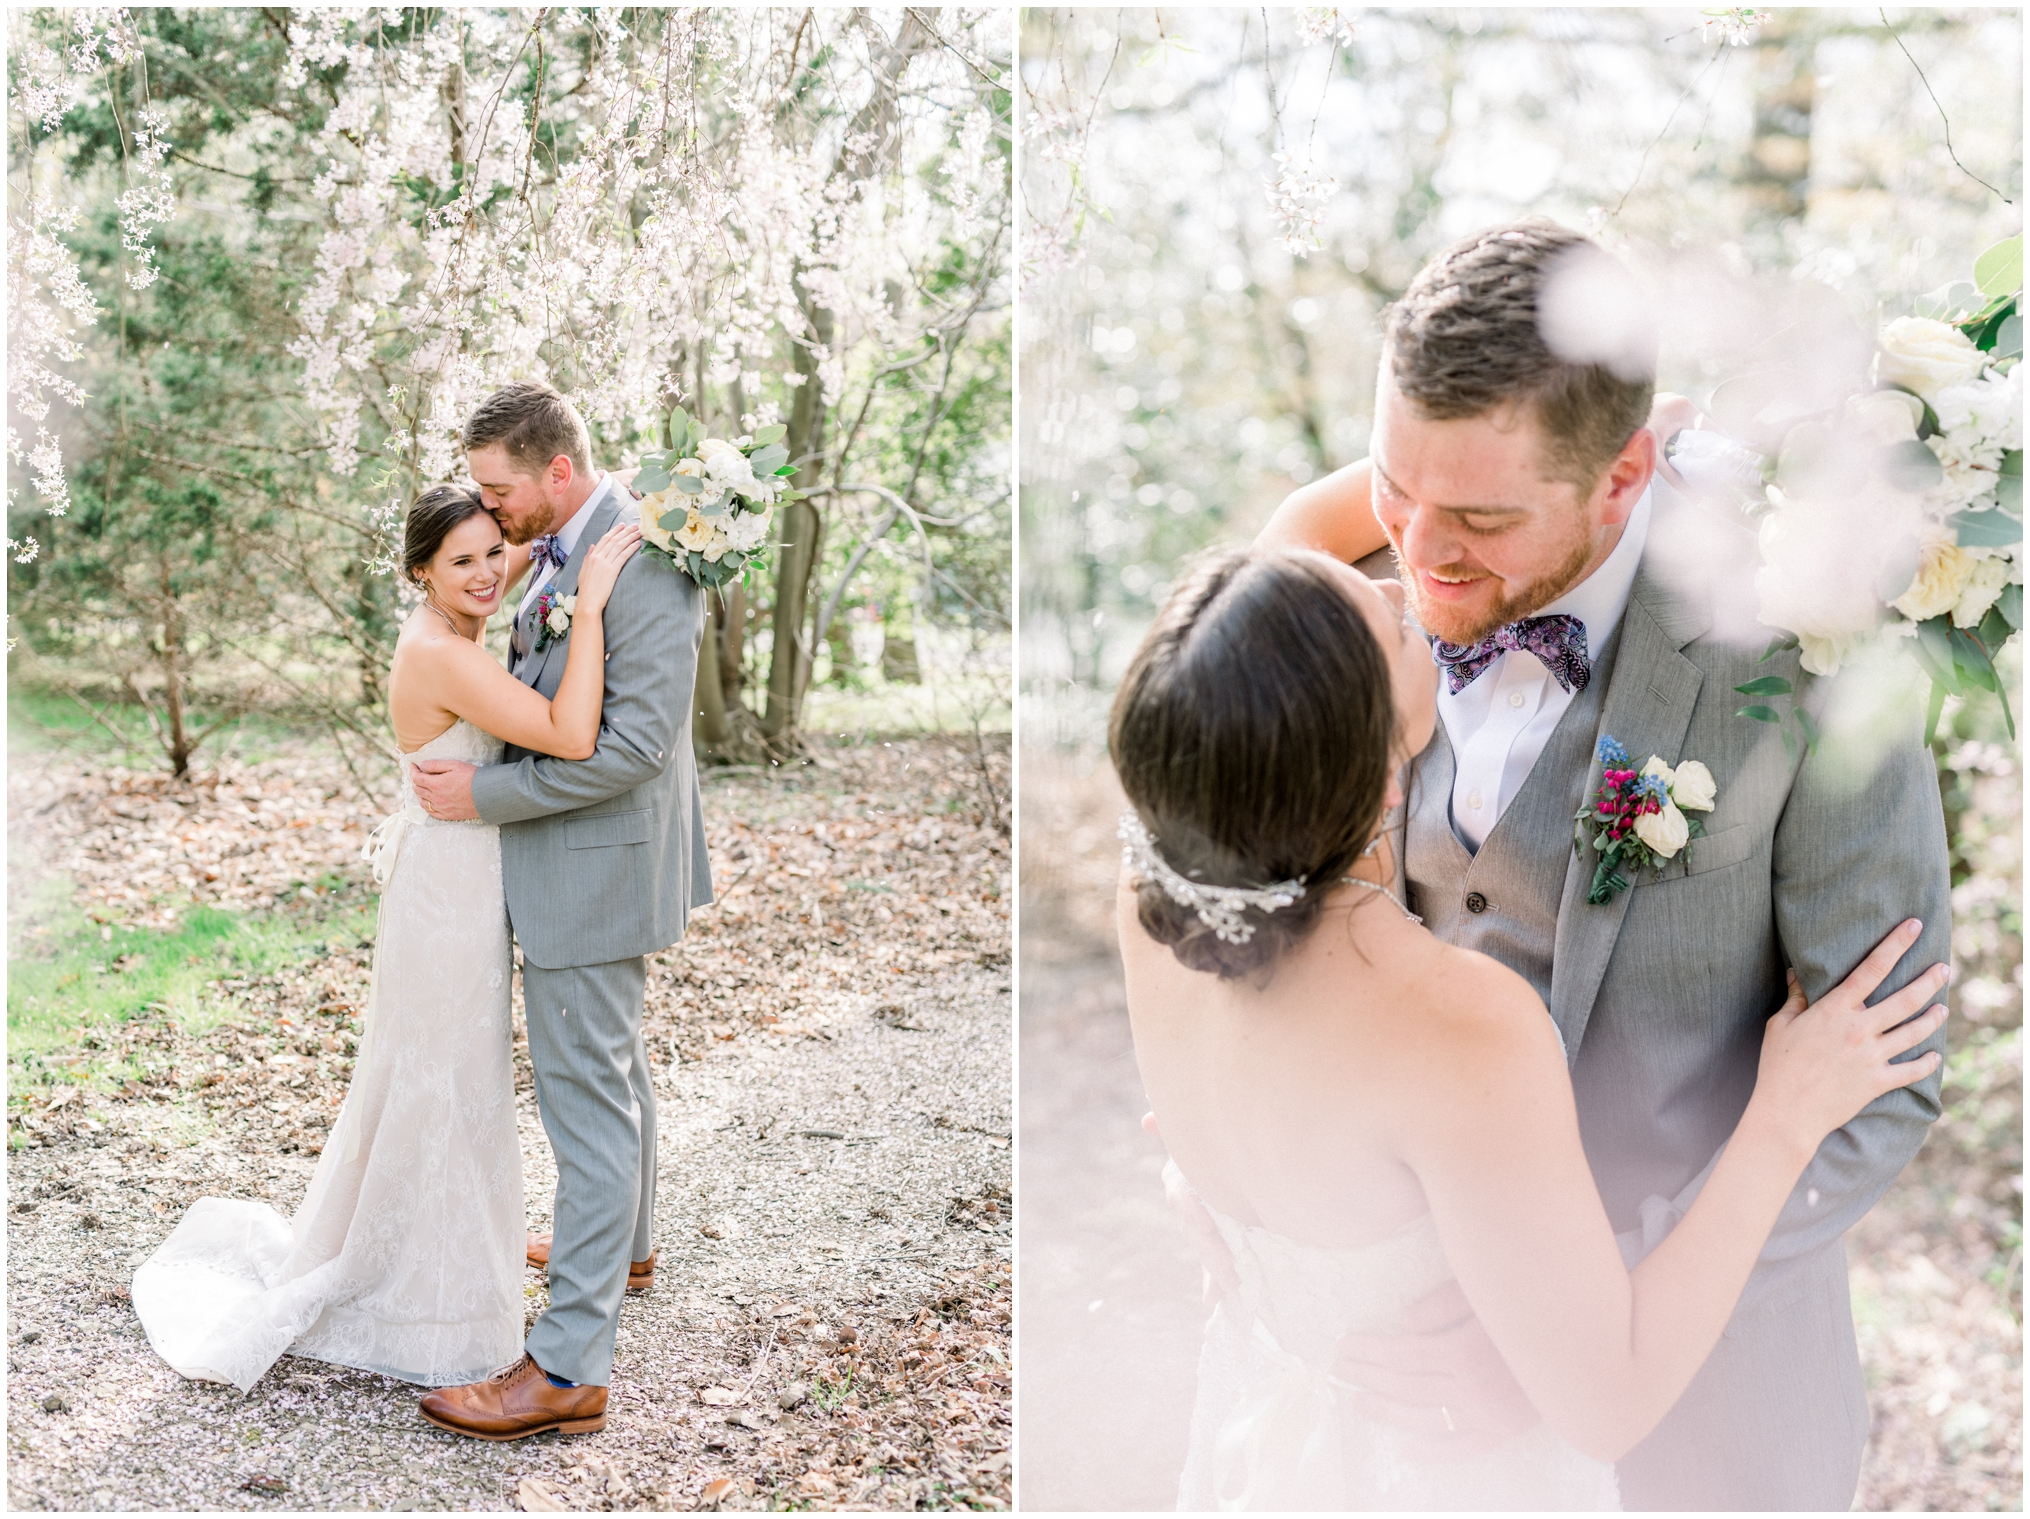 Krista Brackin Photography | April Wedding at The Carriage House at Rockwood Park_0074.jpg